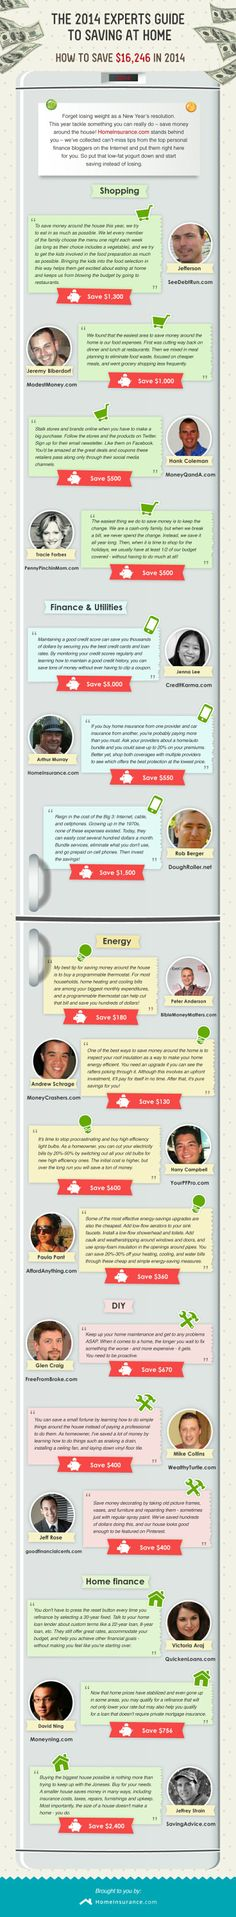 Expert tips on financial planning #infographic